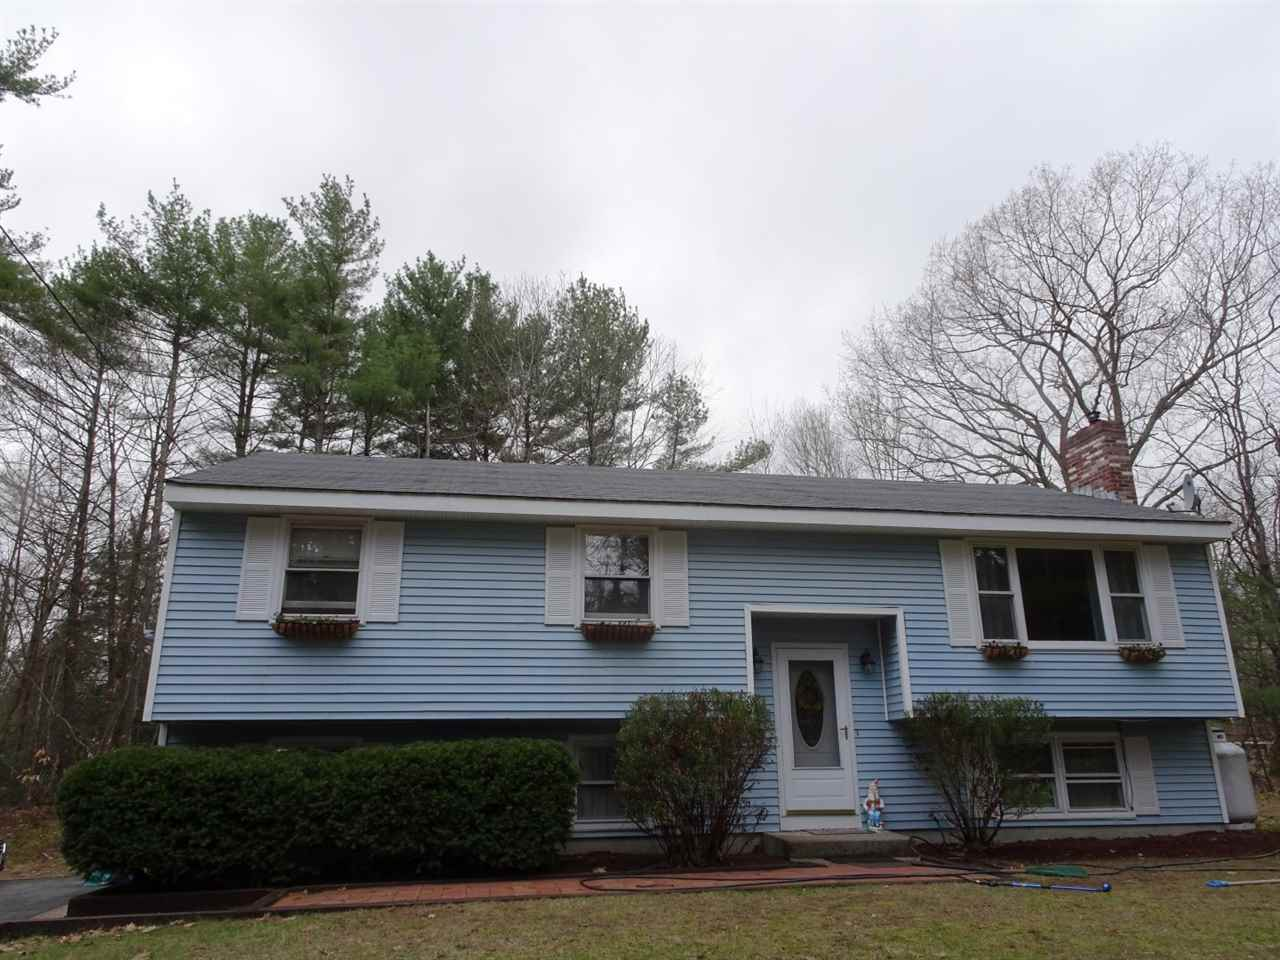 MLS 4749097: 6 South Shore Drive, Jaffrey NH